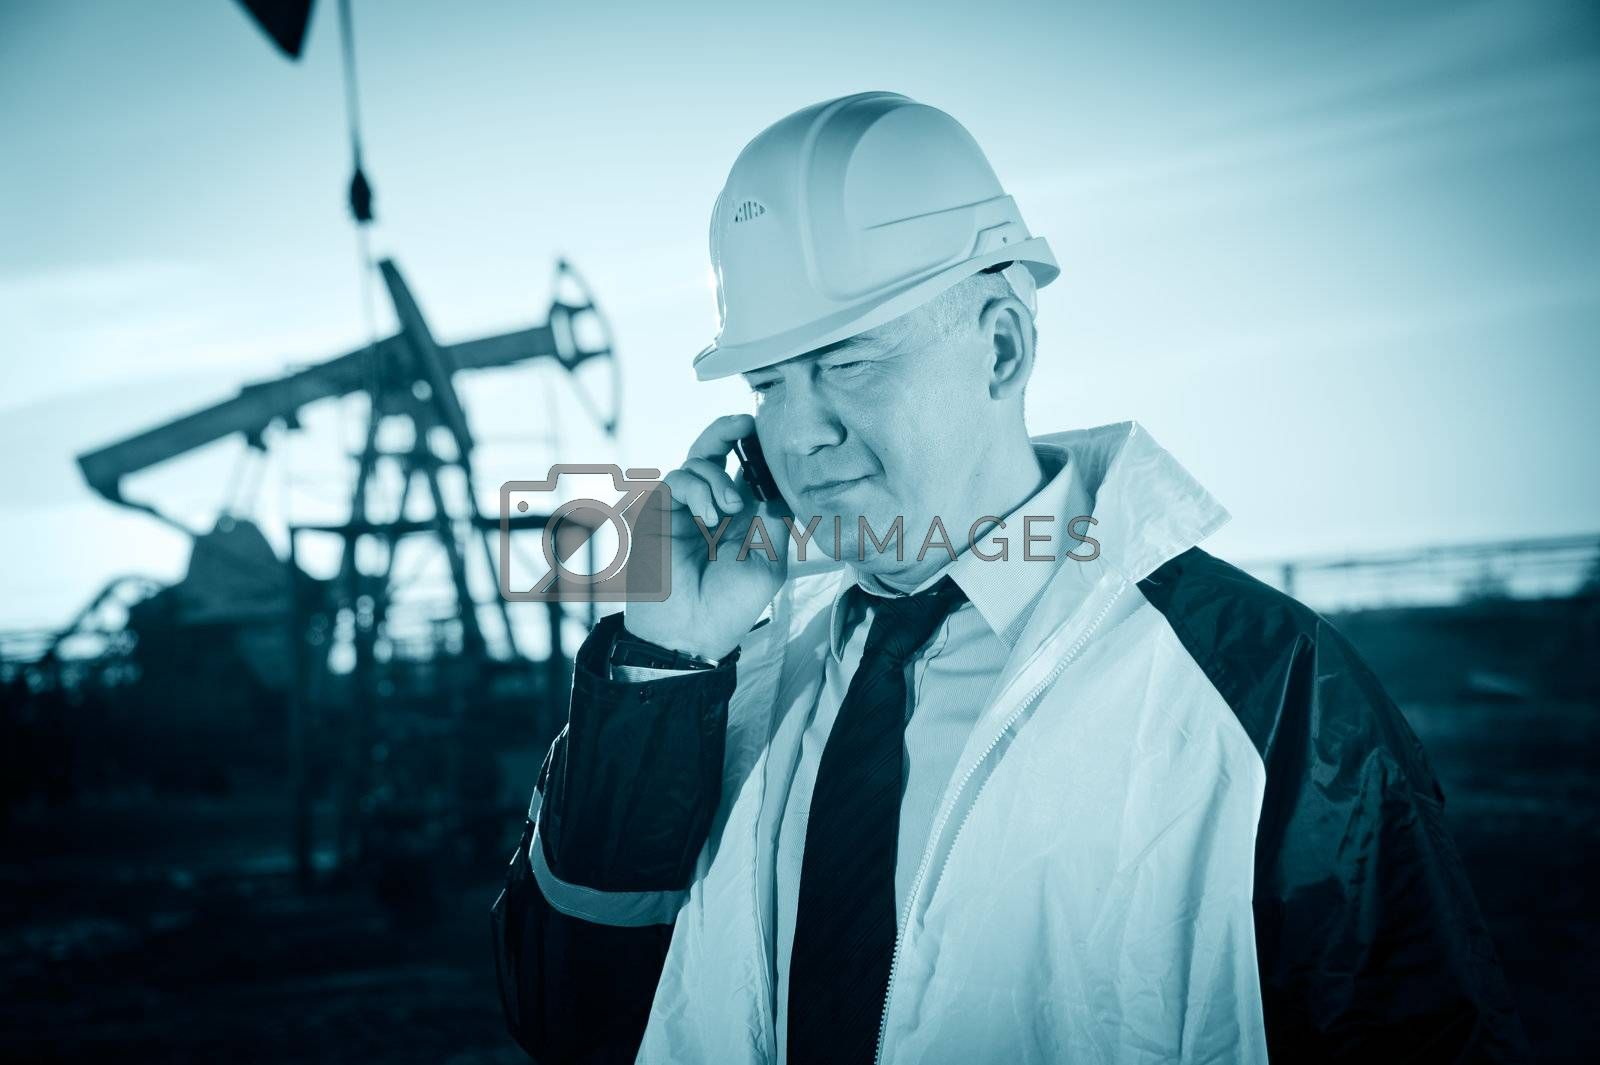 Oil worker in uniform and helmet, with mobile phone on of background the pump jack and sky. Toned.